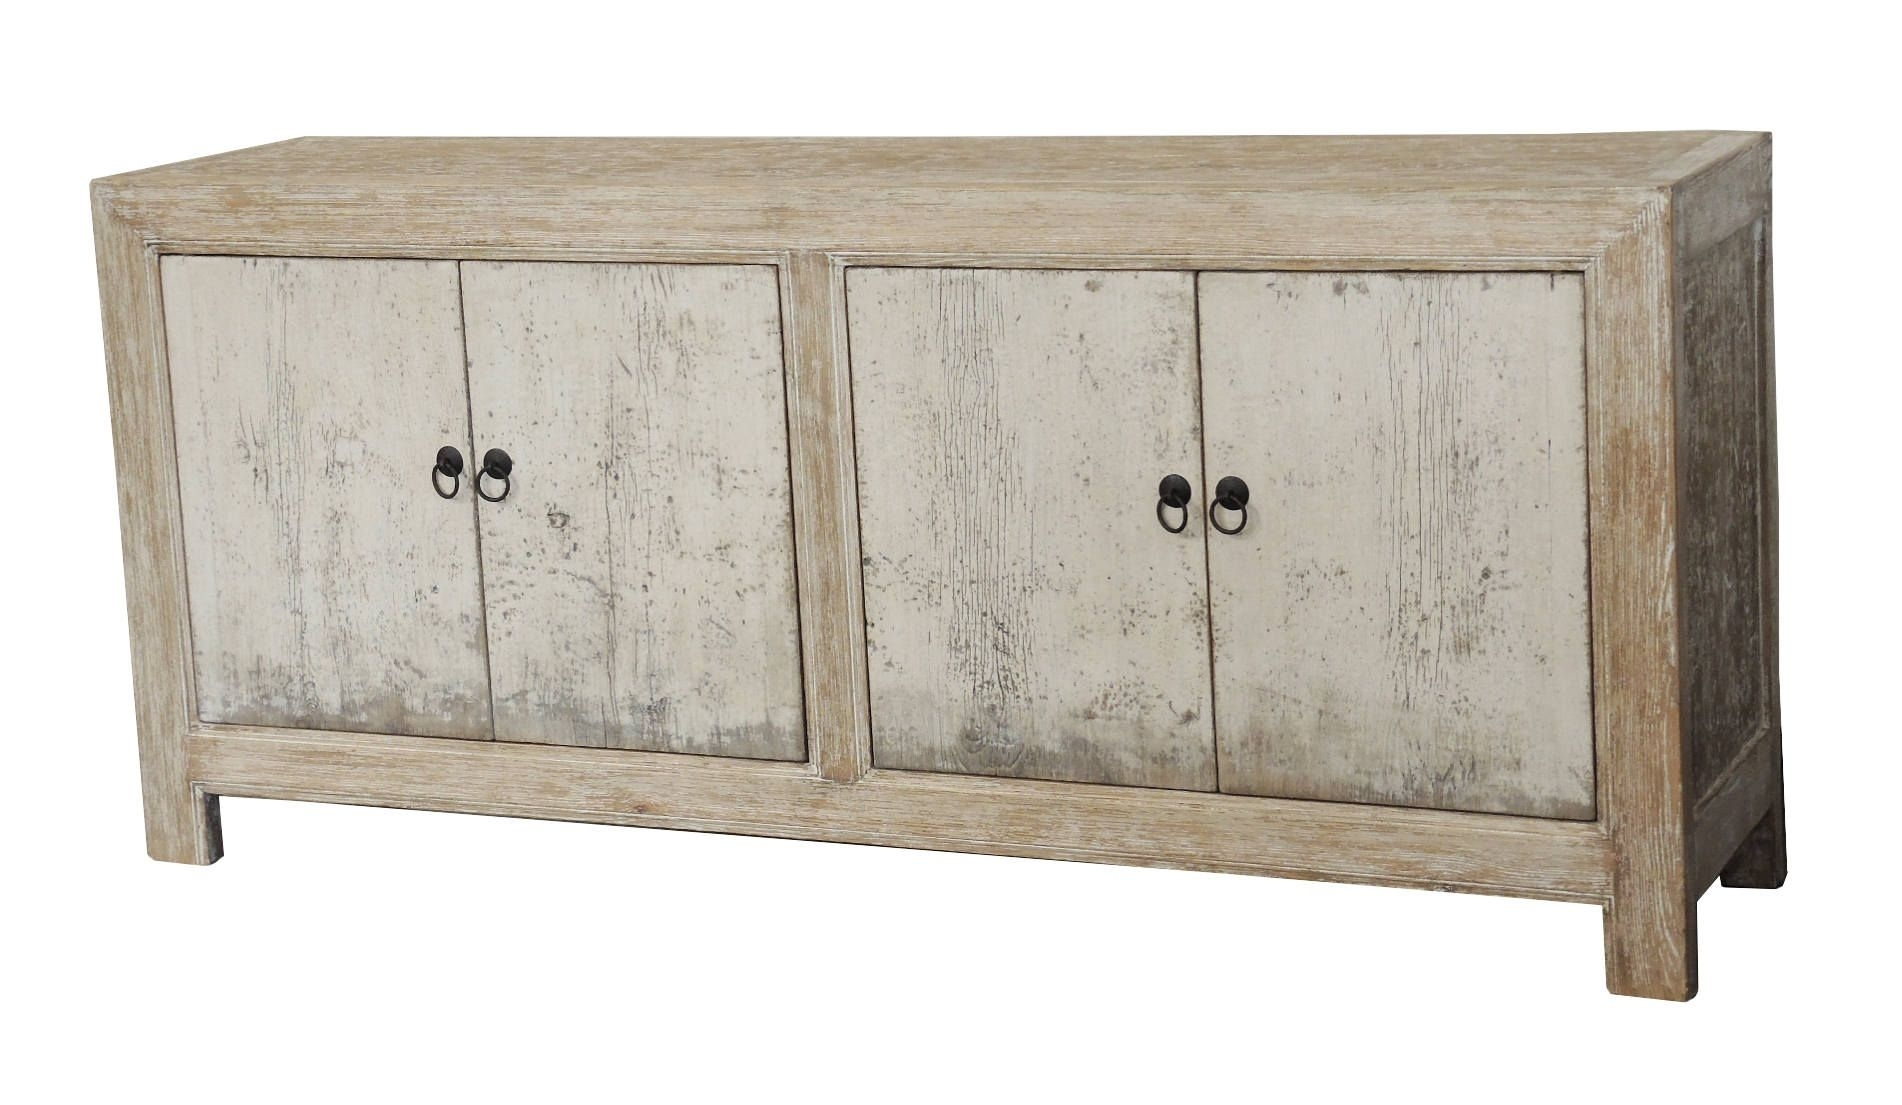 White Wash Distressed 4 Door Sideboard From Terra Nova Designs inside White Wash 4-Door Sideboards (Image 26 of 30)